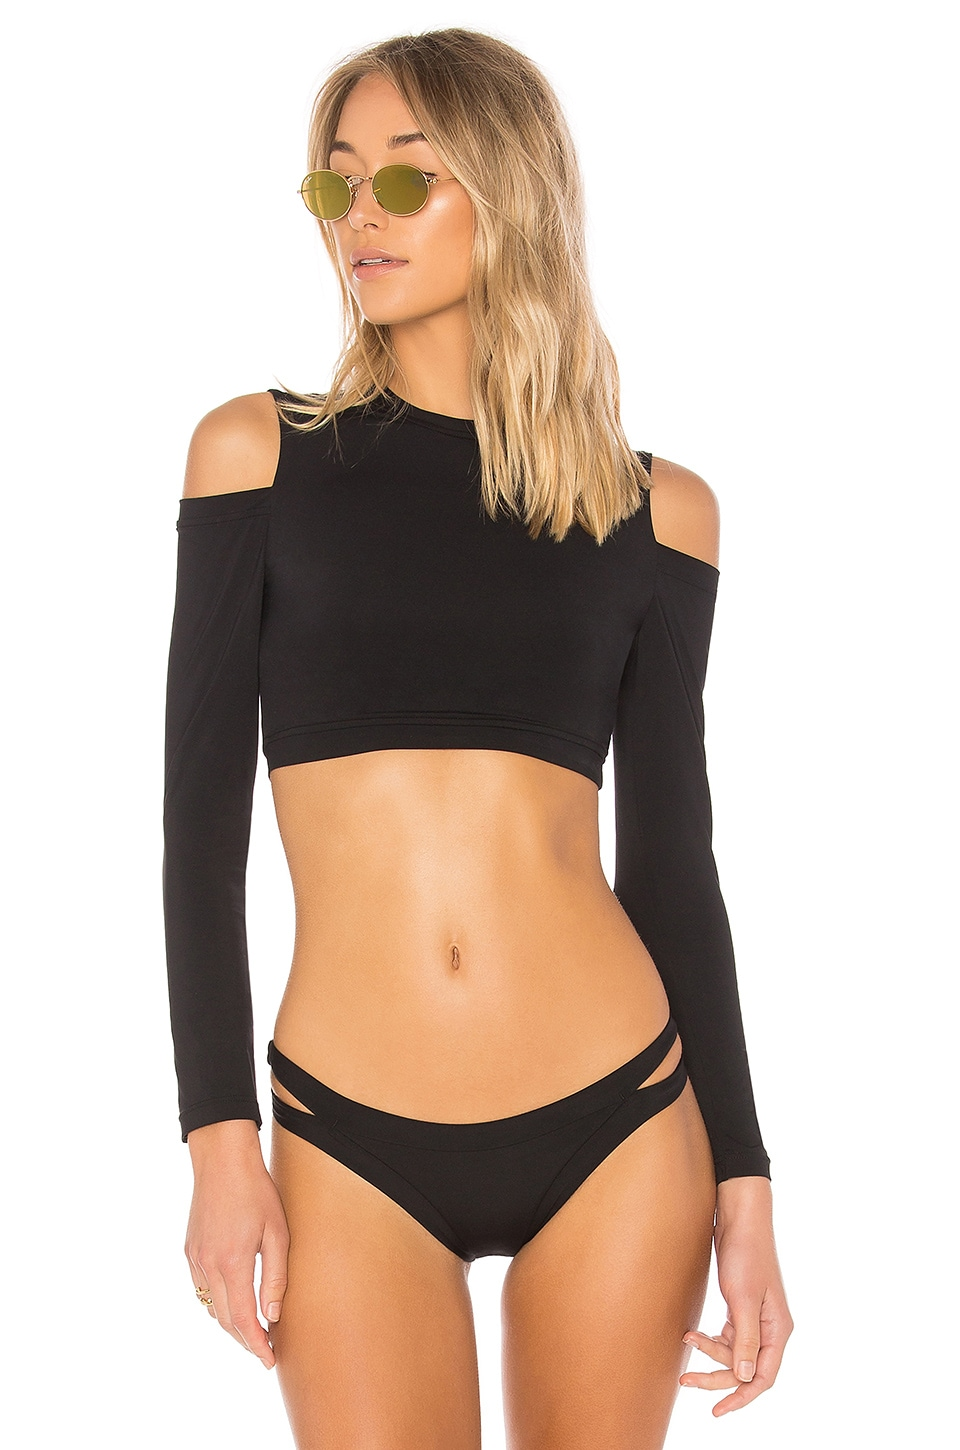 Cold Shoulder Rashguard Top by Seafolly Swimwear